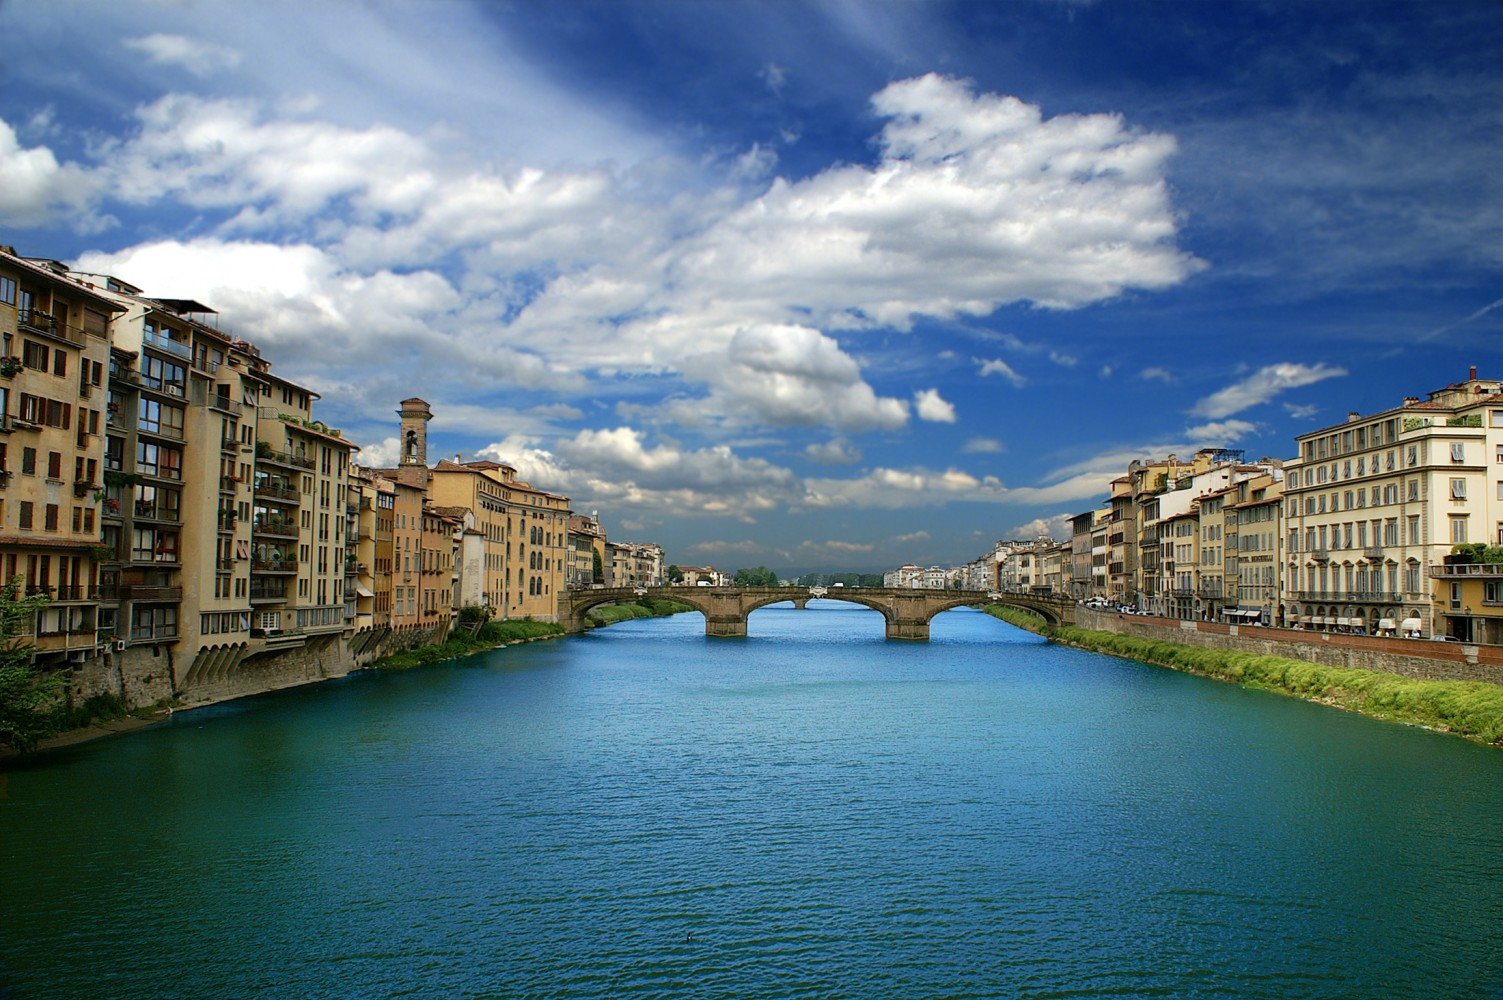 TOUR DE FLORENCE FOR CRUISERS<p>A SHORE EXCURSION FROM LIVORNO  FROM YOUR SHIP, A UNIQUE DAY IN FLORENCE</p>---BOOK NOW---florence-for-cruisers-a-shore-excursion-from-livorno